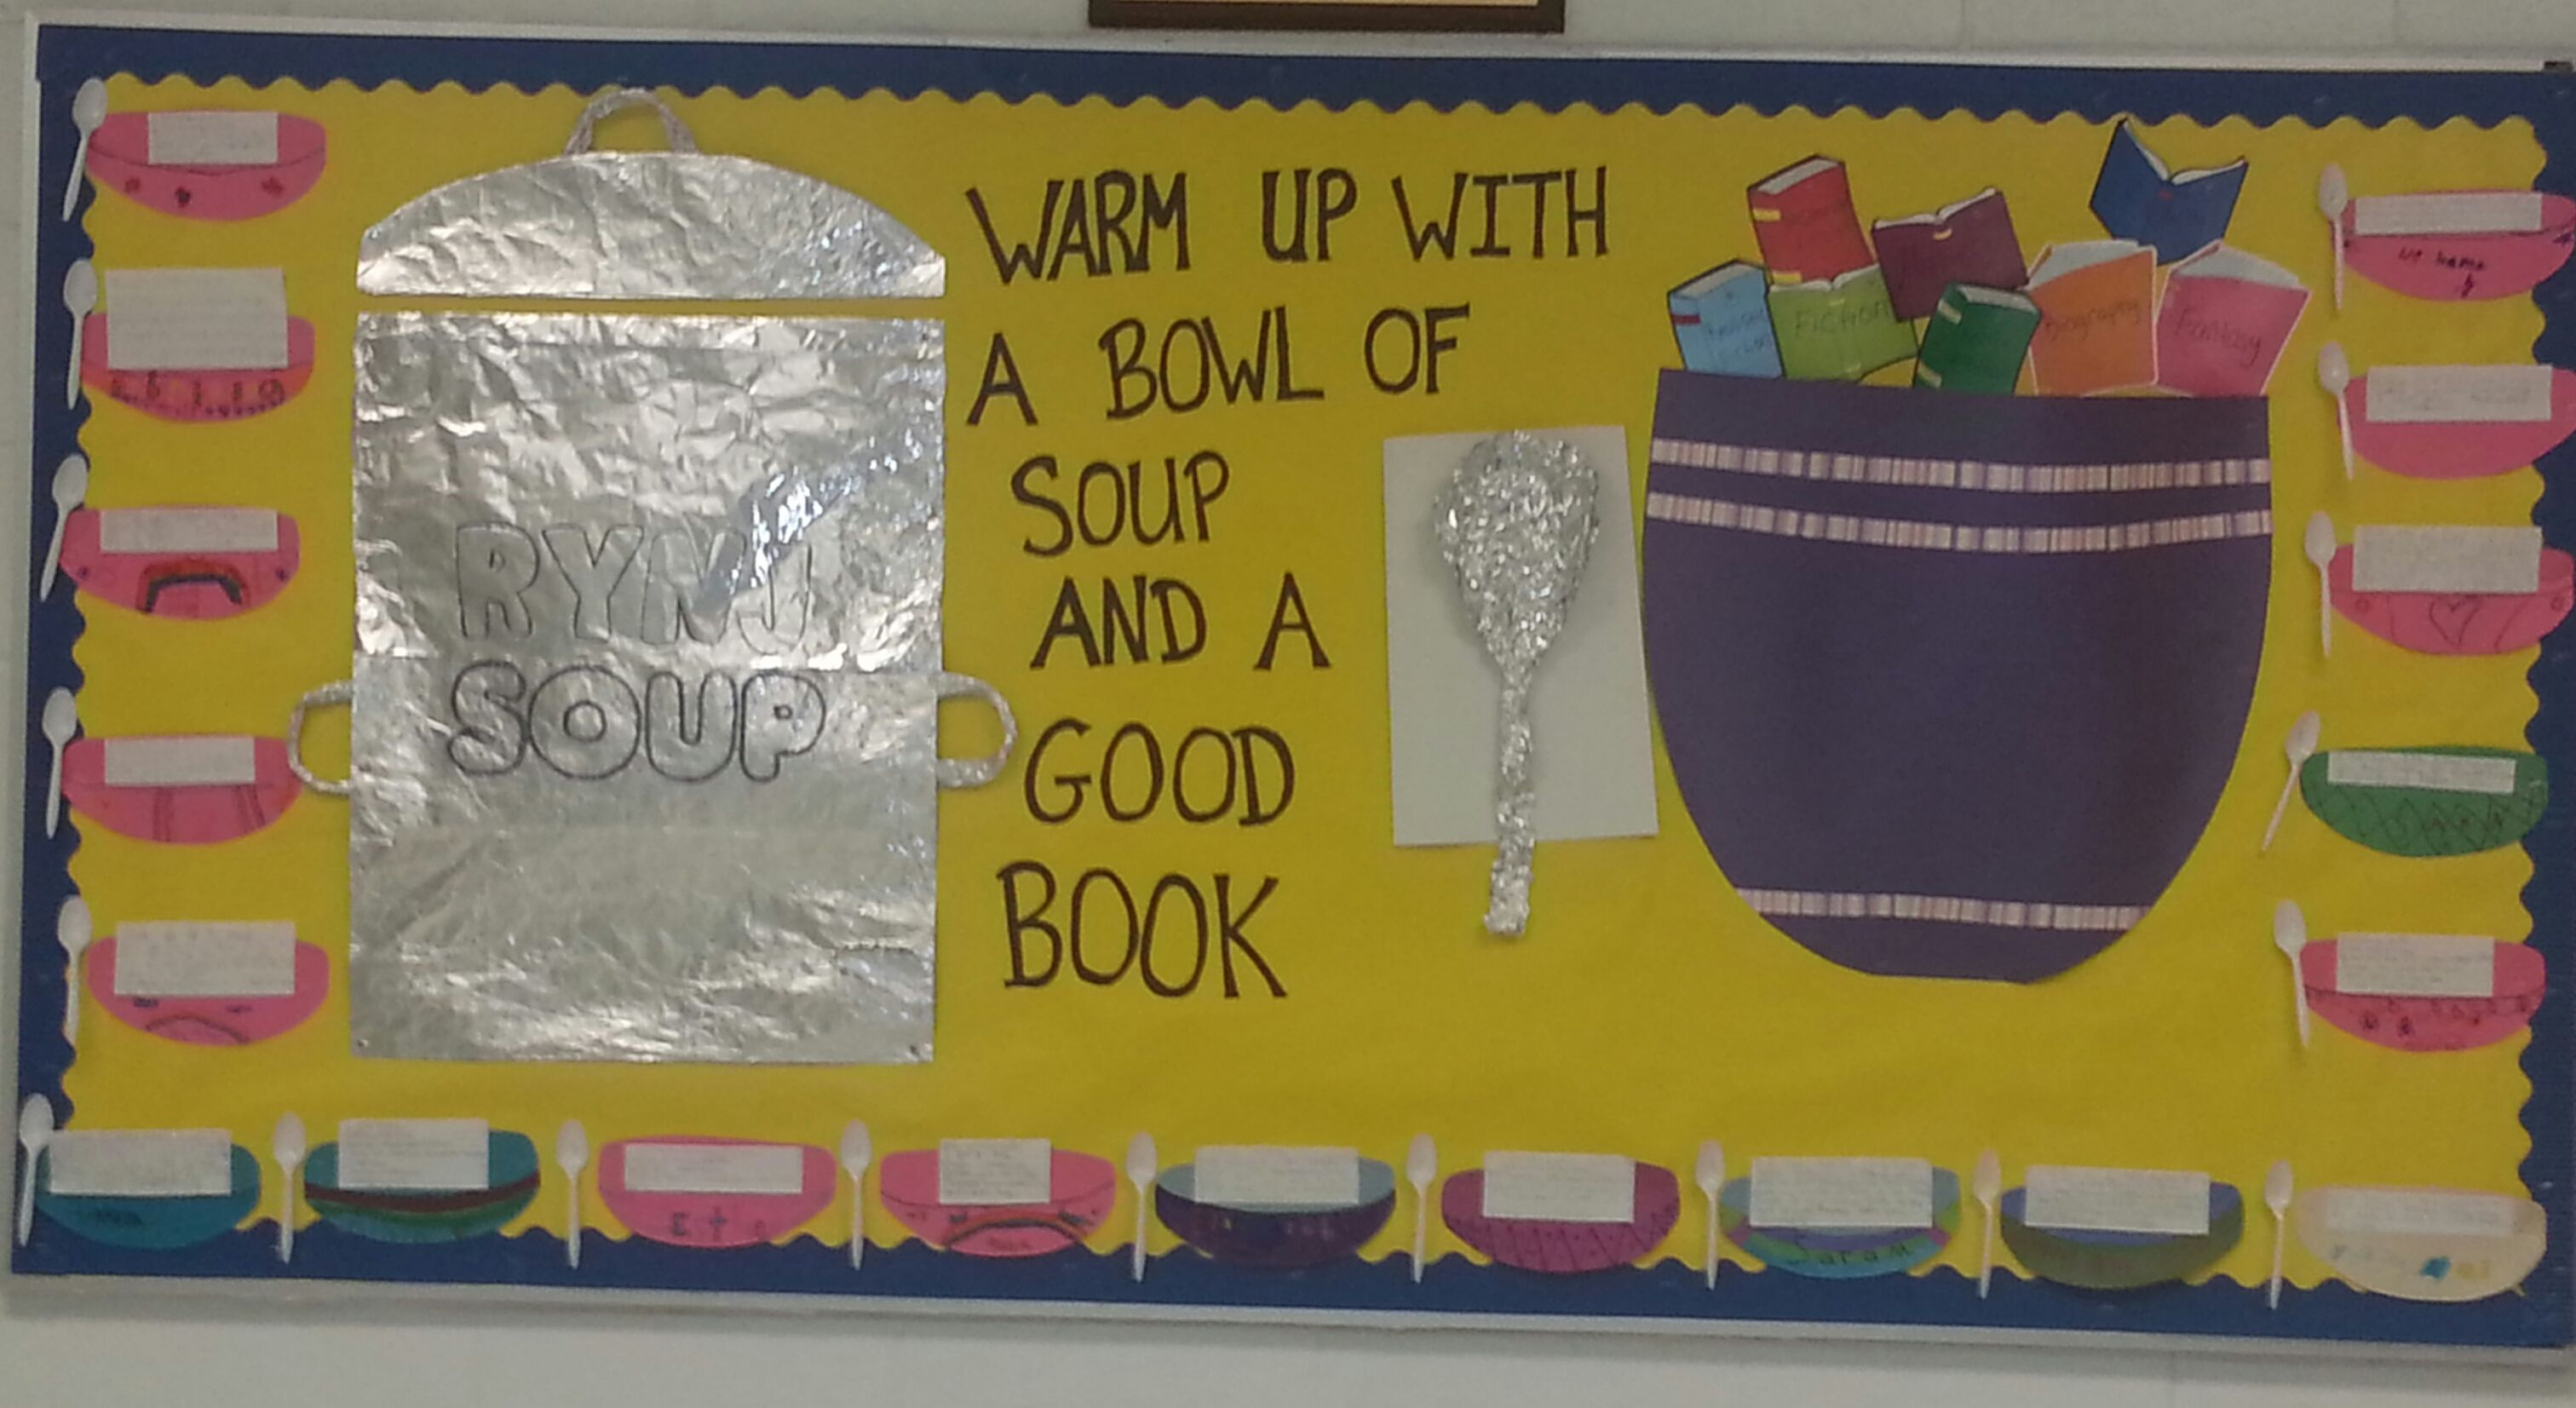 Warm Up With A Bowl Of Soup And A Good Book